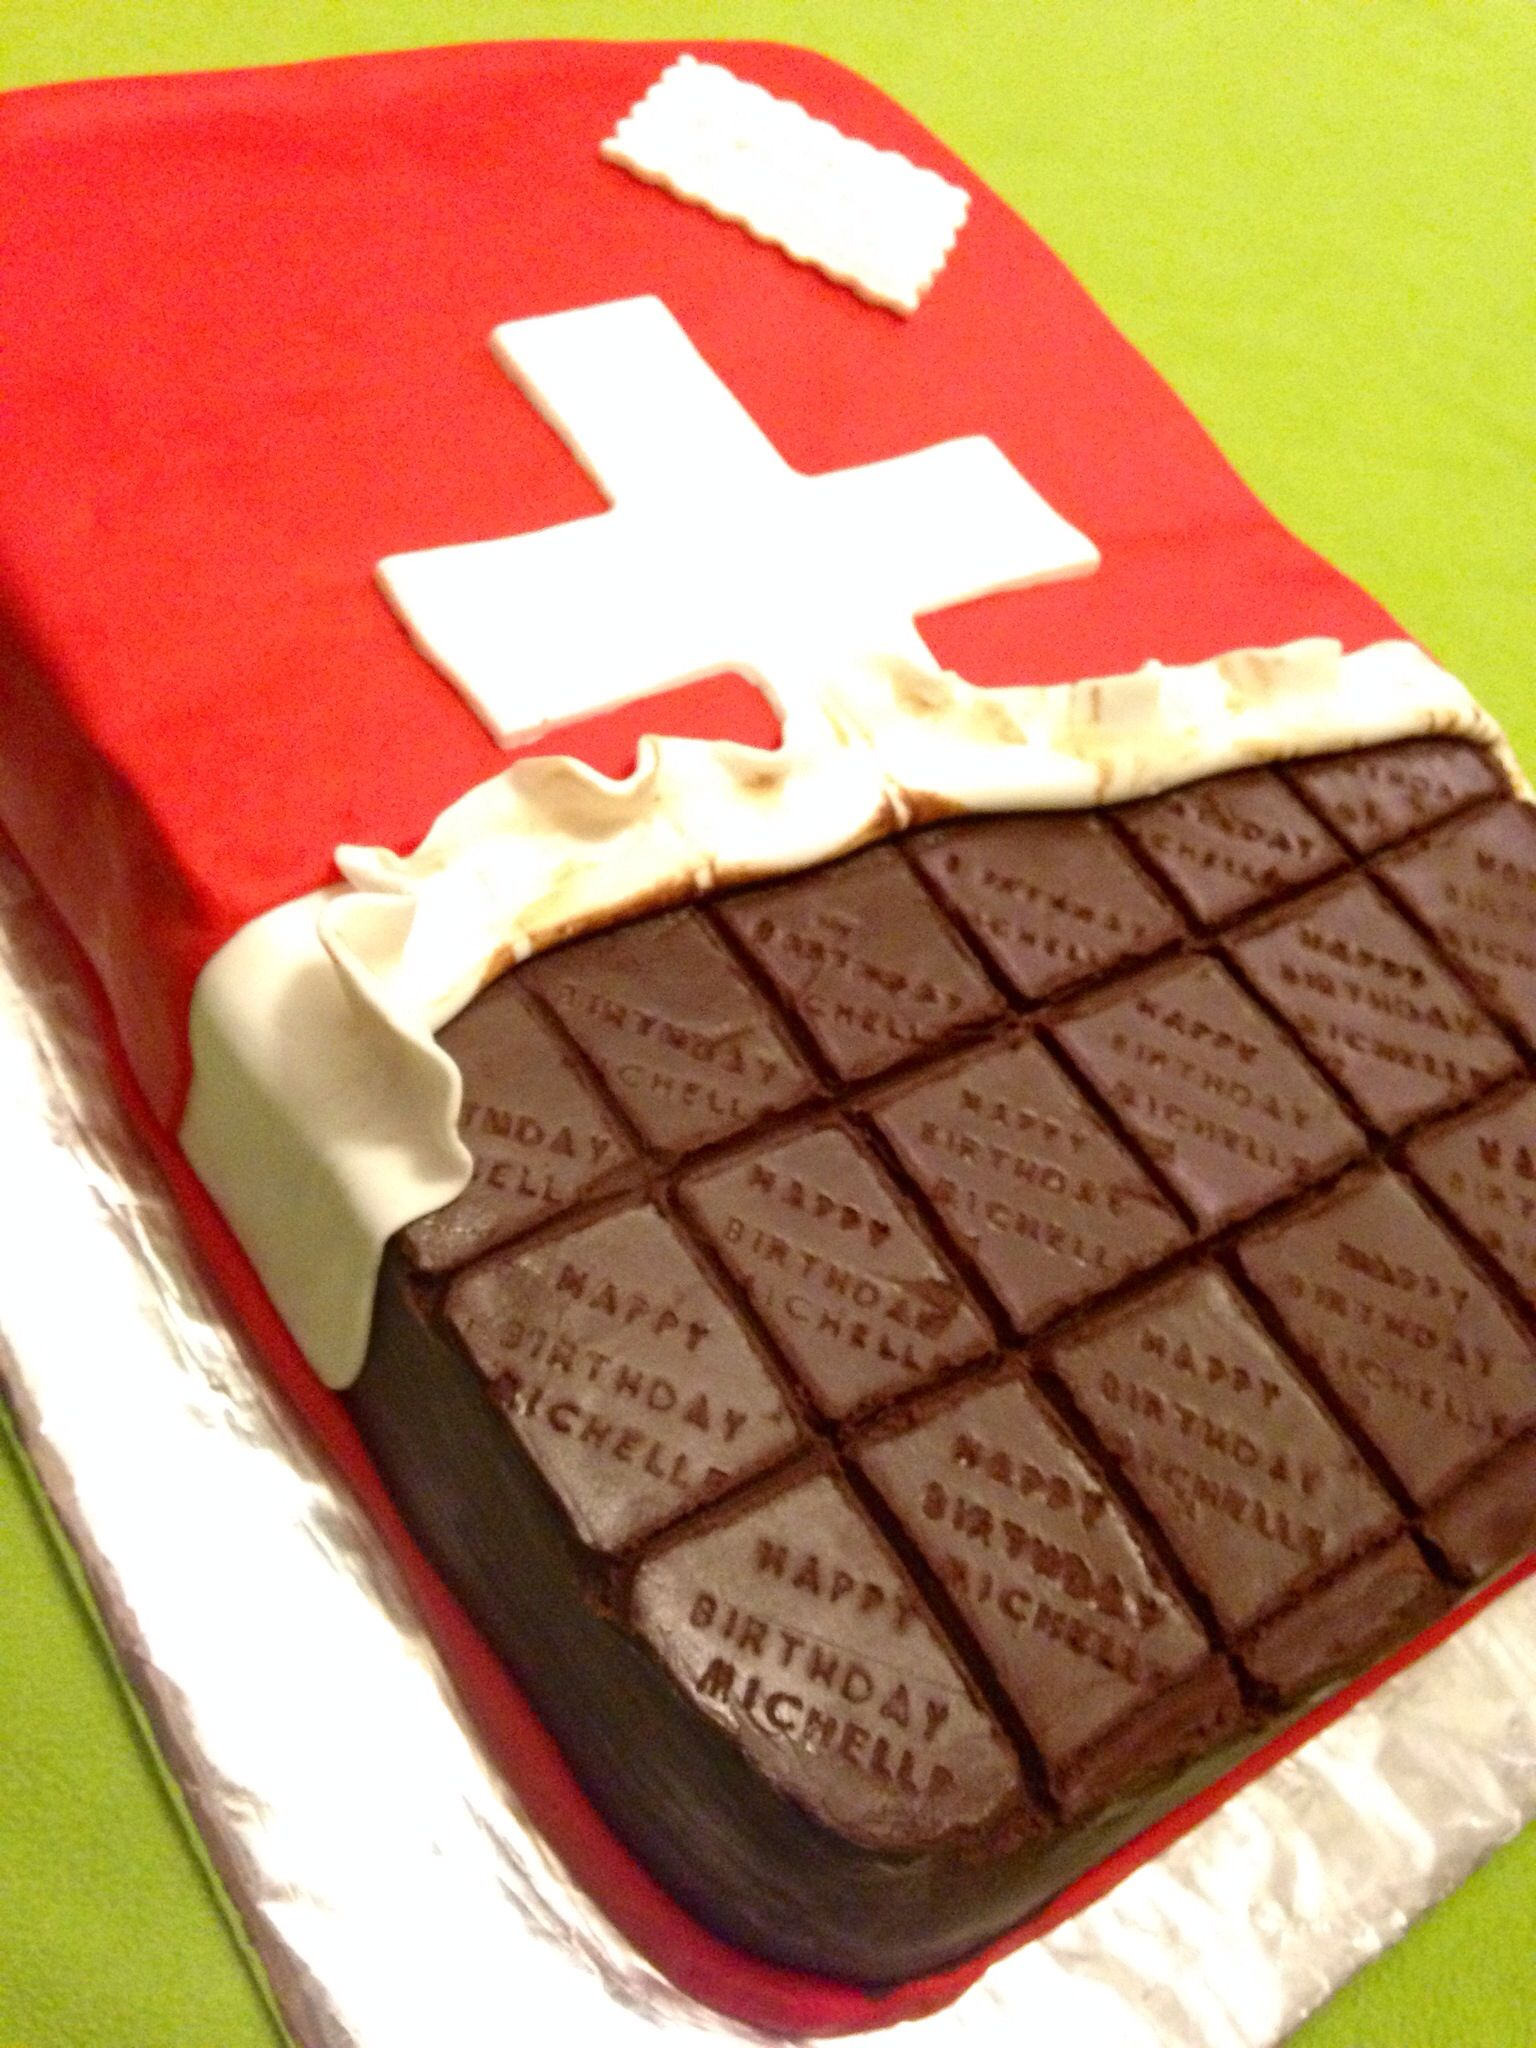 Swiss chocolate bar